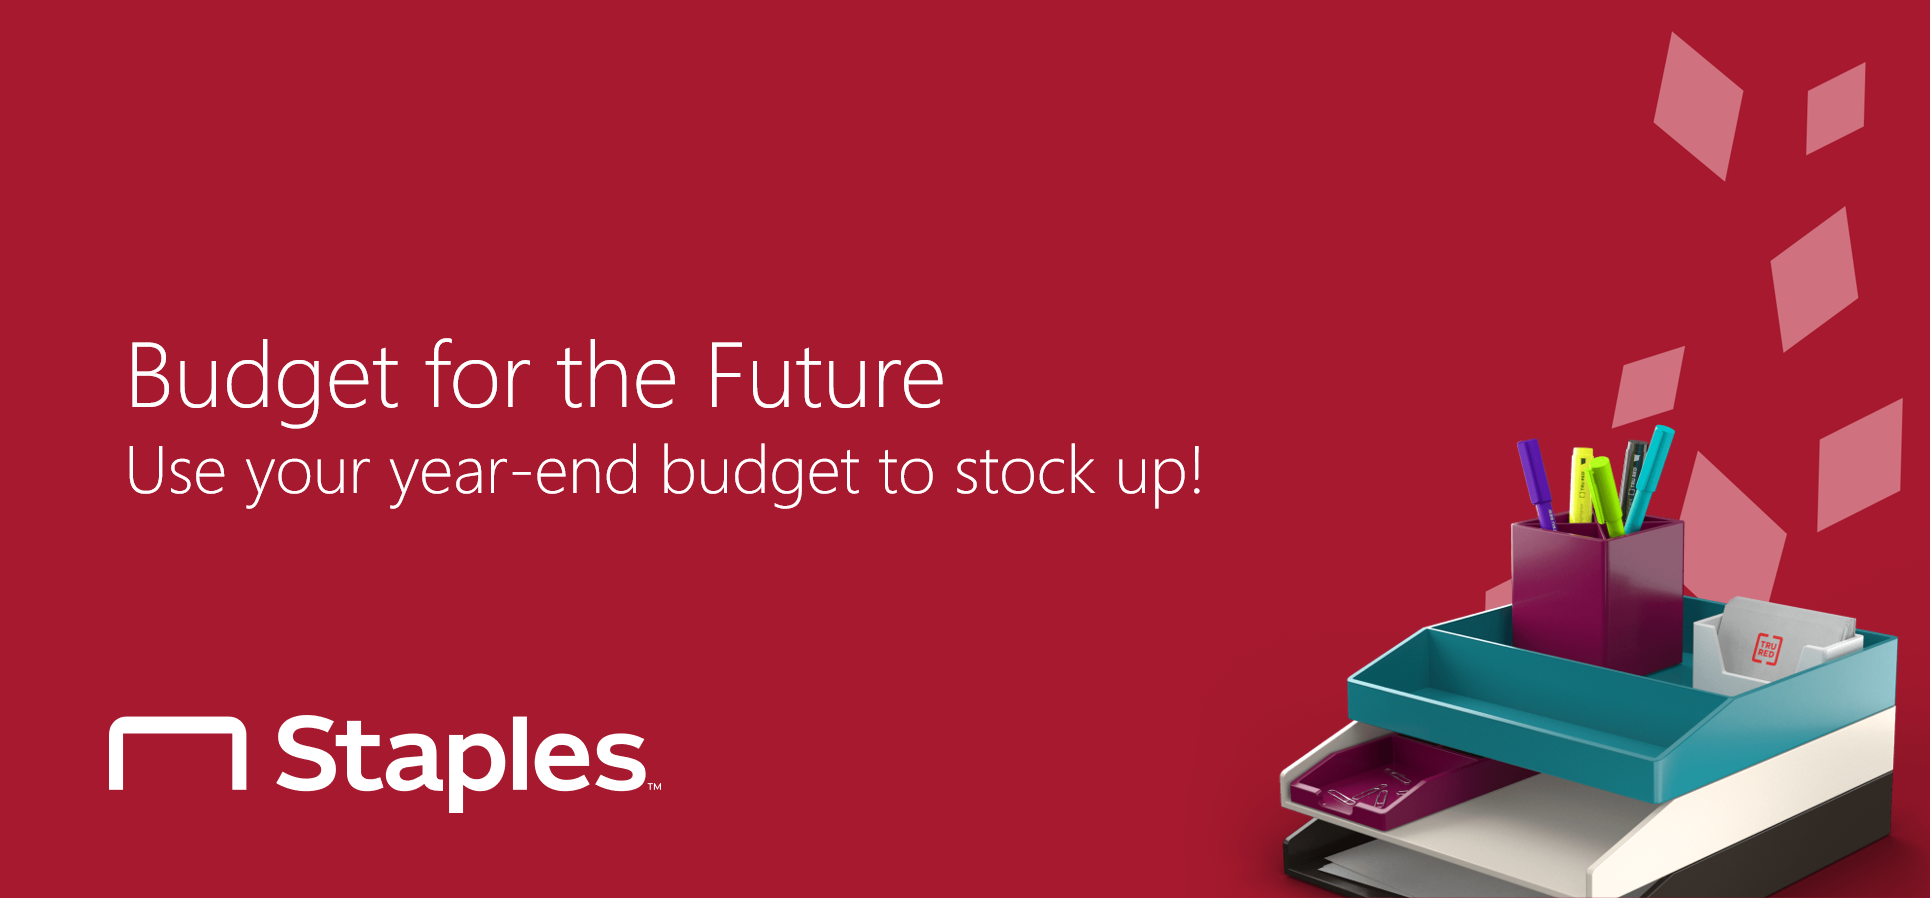 Budget for the Future with NPPGov and Staples